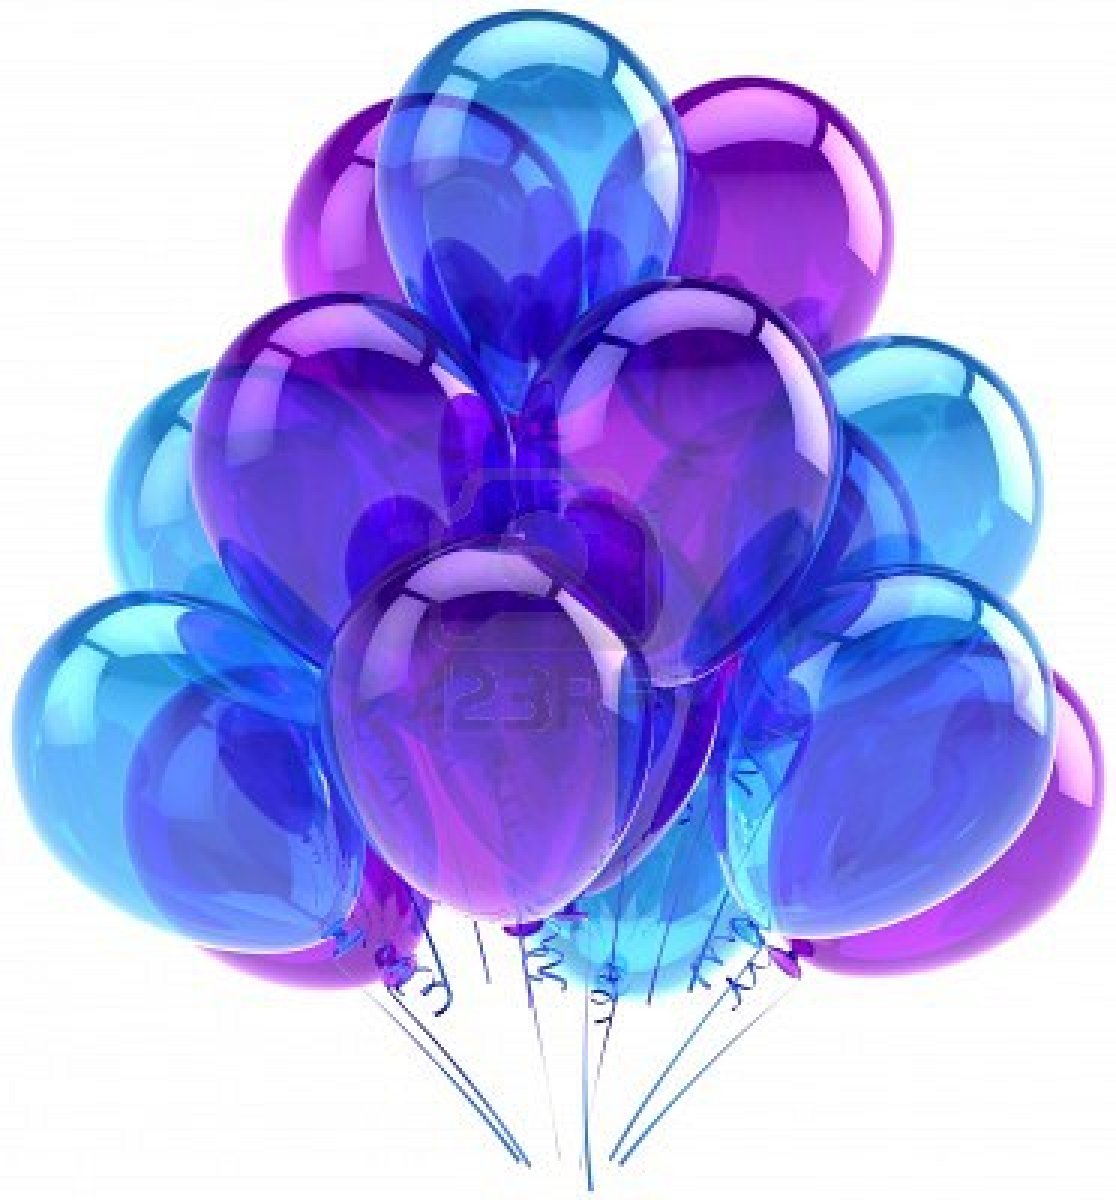 Balloon clipart vector Of  Balloons translucent celebration